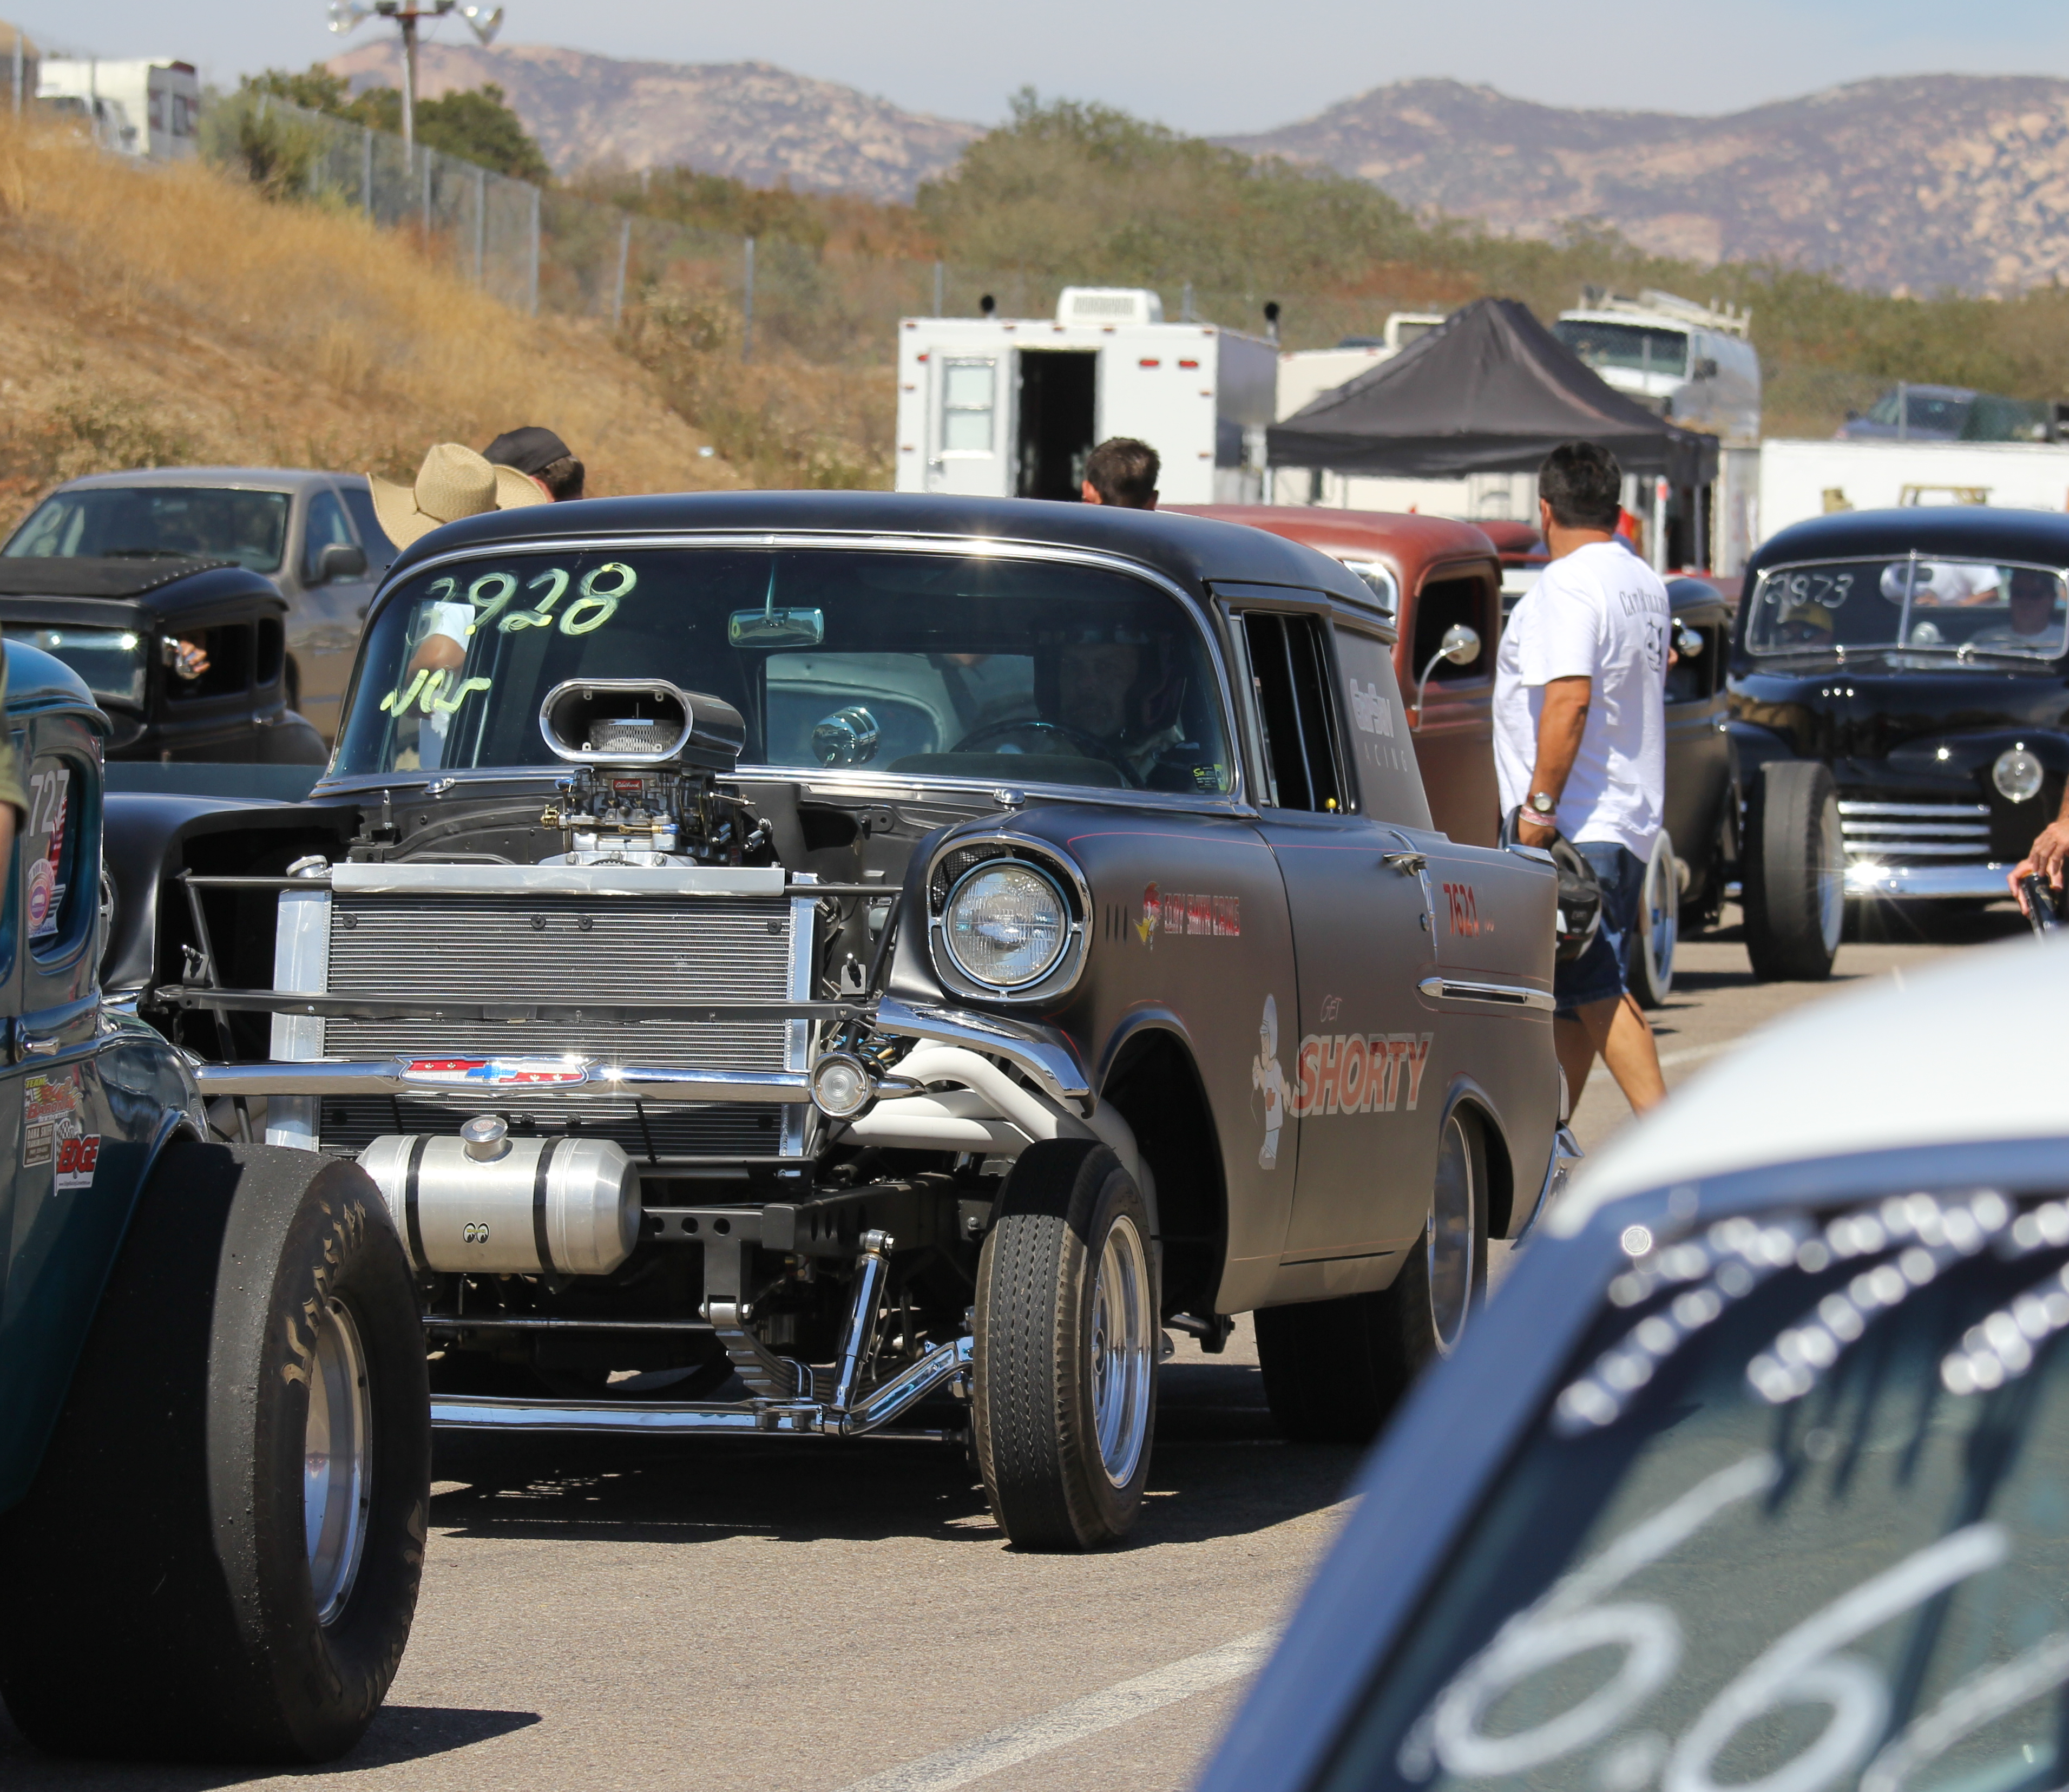 Hurry up and wait is a fairly typical drill at the drags—Barona's no different. Nestled into the hills on the Barona Indian Reservation in San Diego County, the 1/8th mile strip reminded many of those days of yore when mom and pop tracks dotted the country in the 1960s and 70s.